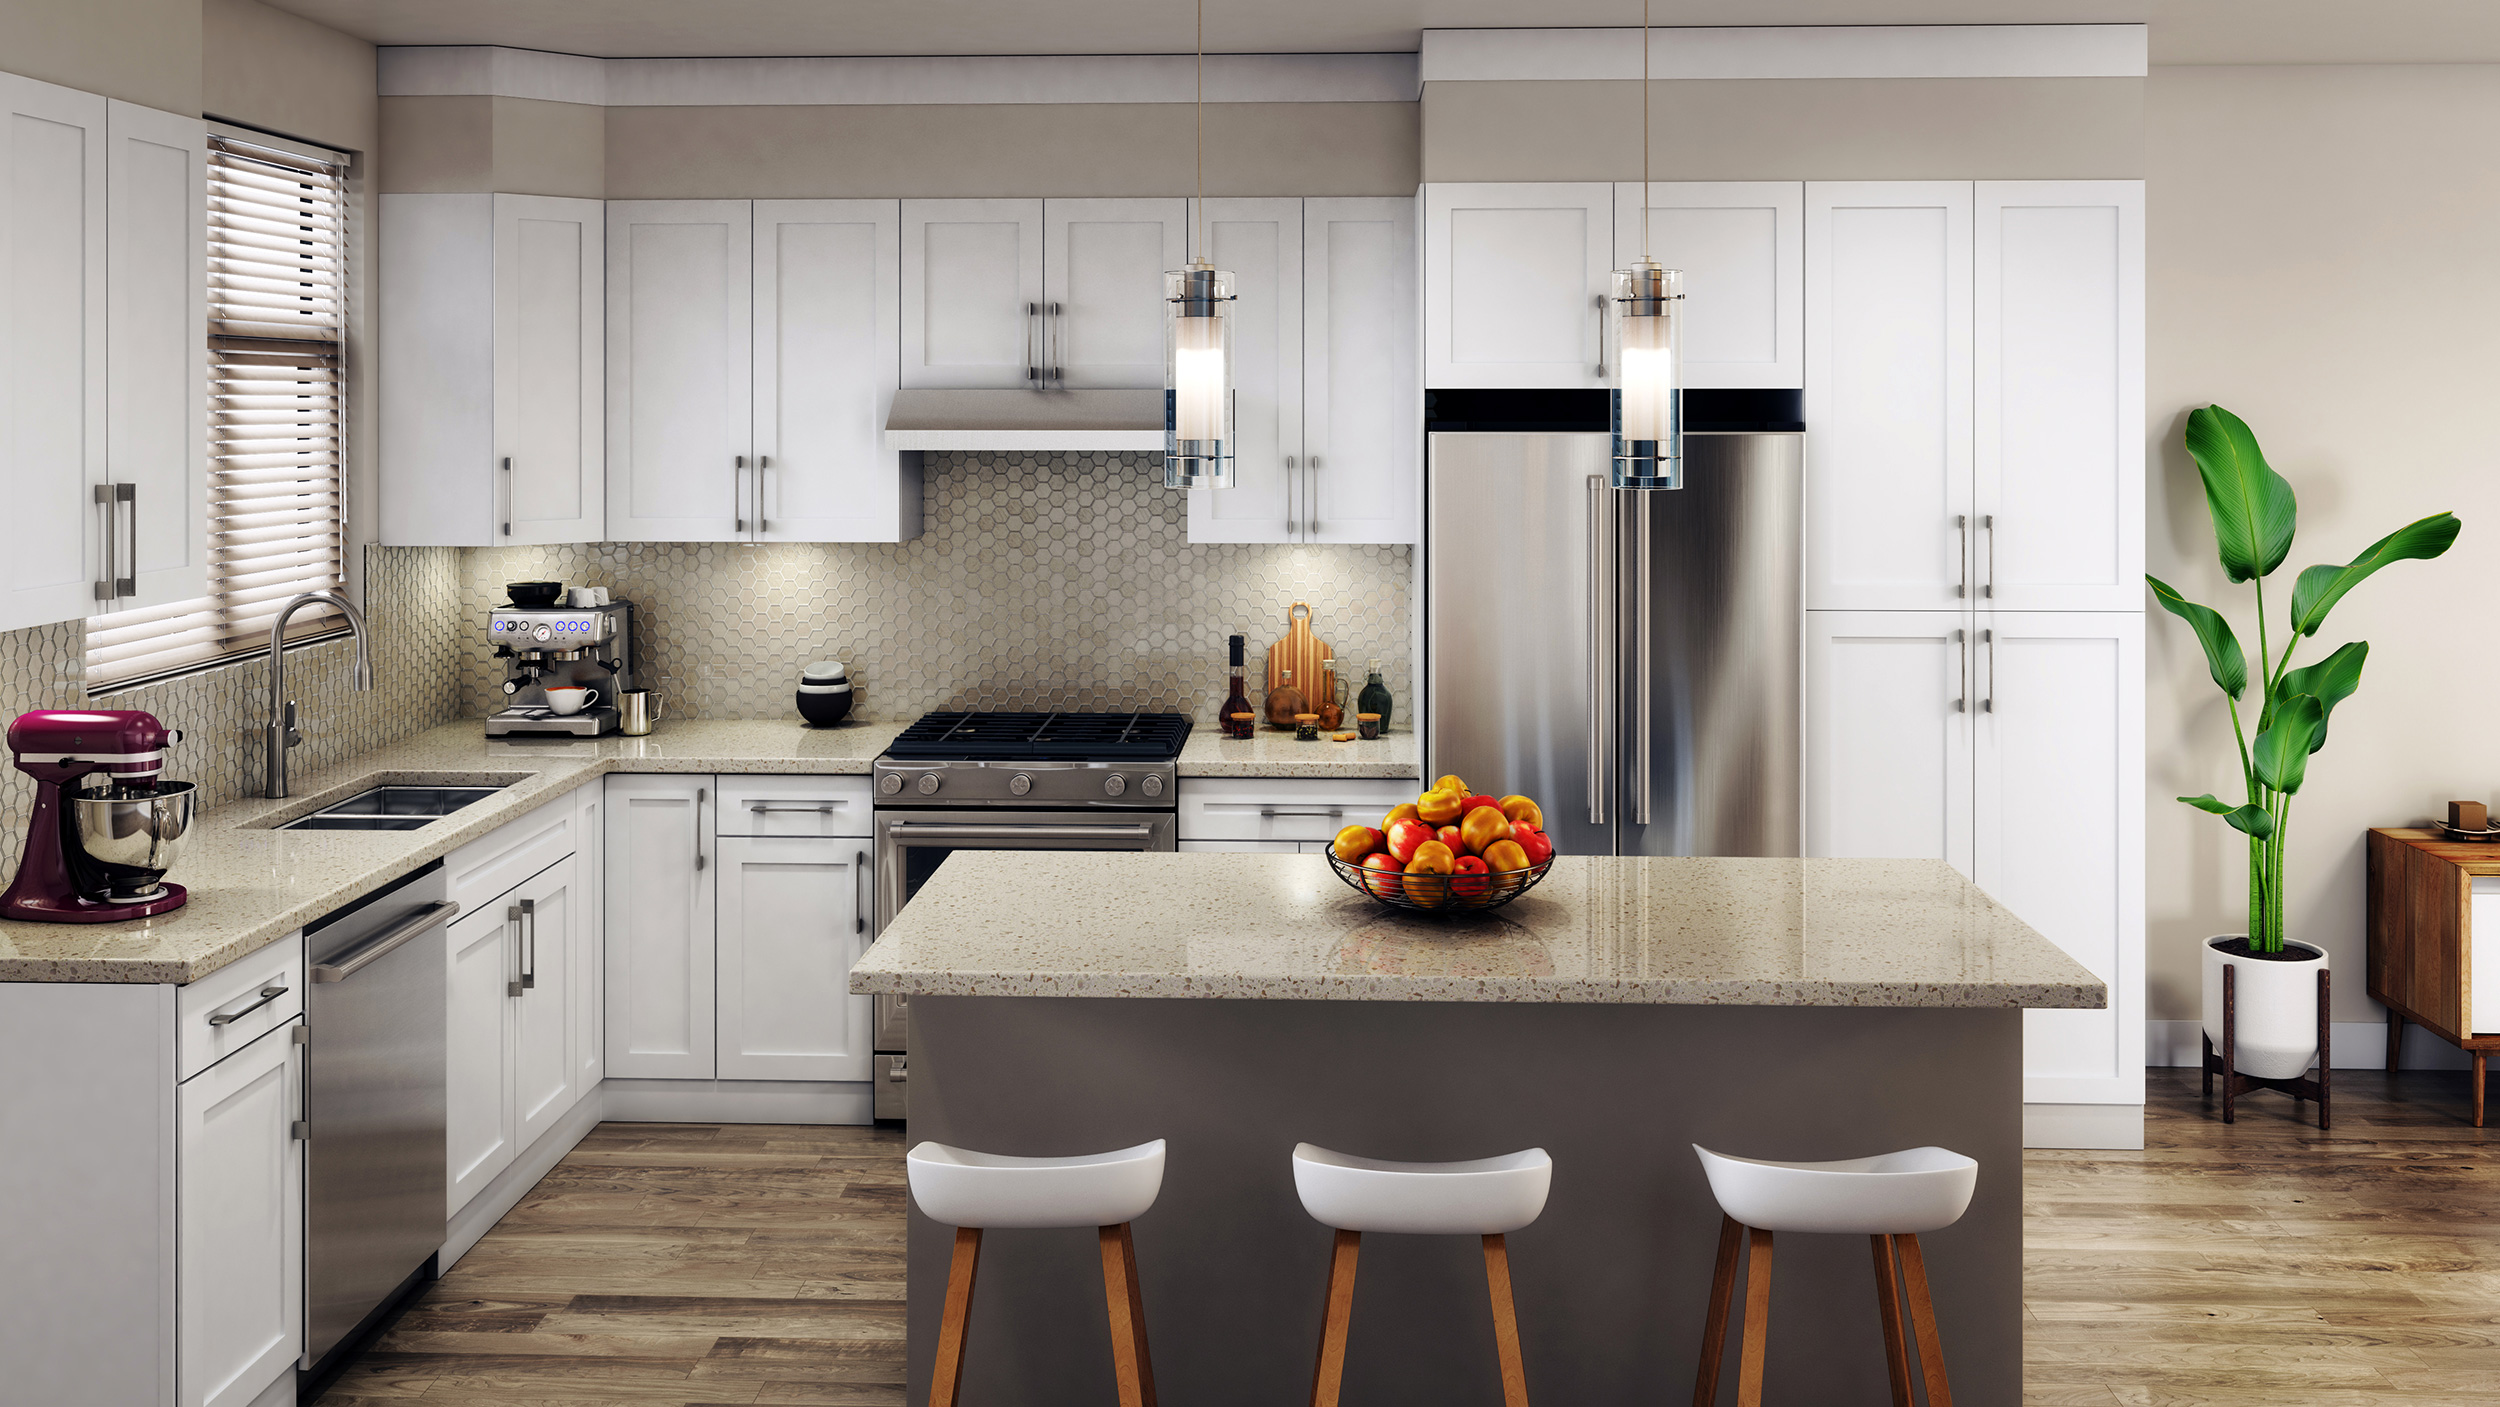 Our kitchens are finished with high quality materials and top of the line appliances